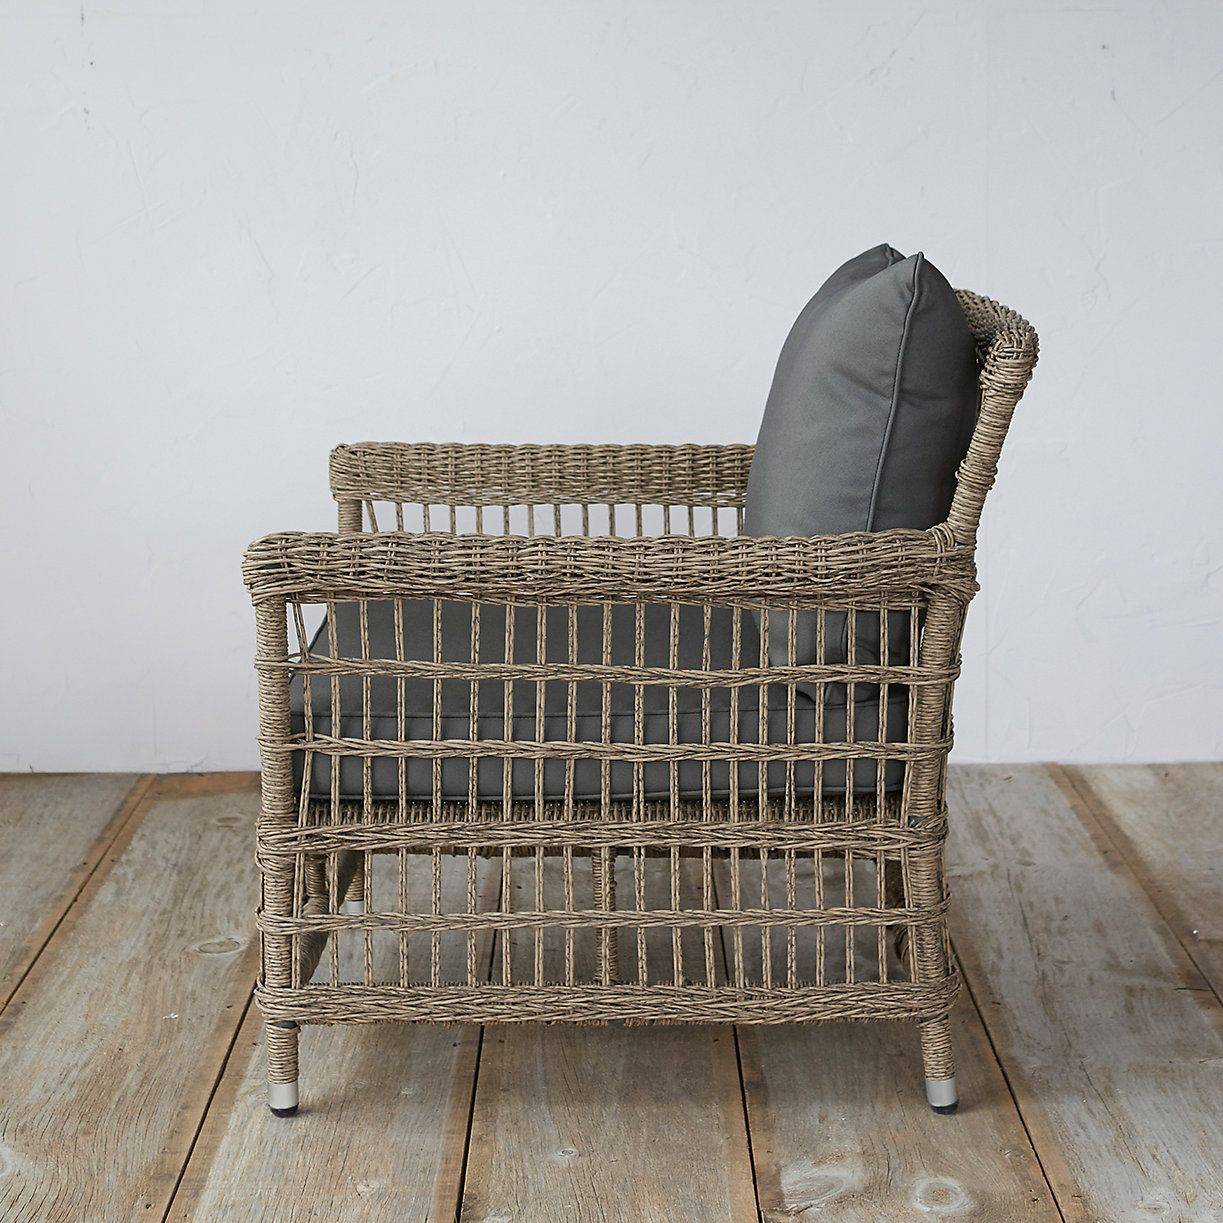 Trellis weave all weather wicker lounge chair us ranch deck